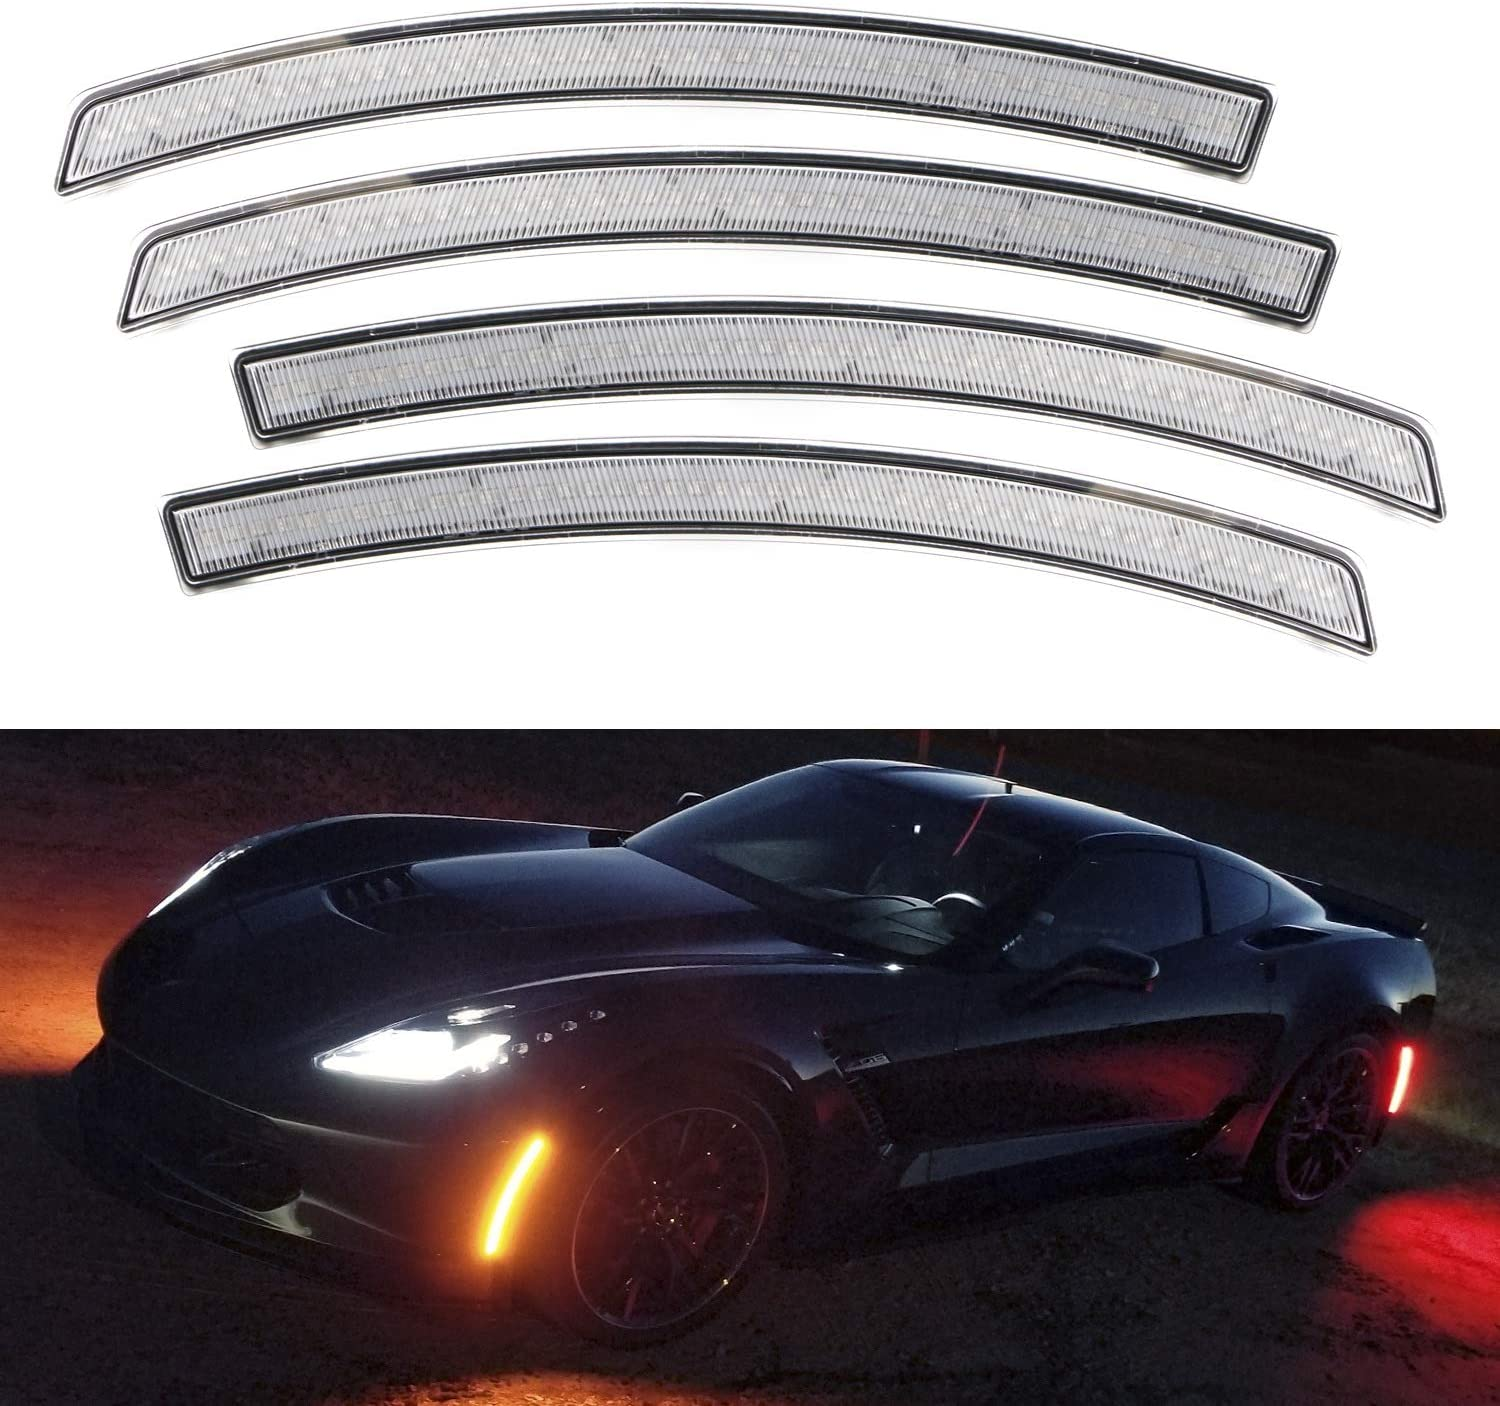 Replace OEM Sidemarker Lamps iJDMTOY Smoked Lens Full LED Strip Rear Side Marker Light Kit Compatible With 1999-2004 Chevy C5 Corvette Powered by 50-SMD LED